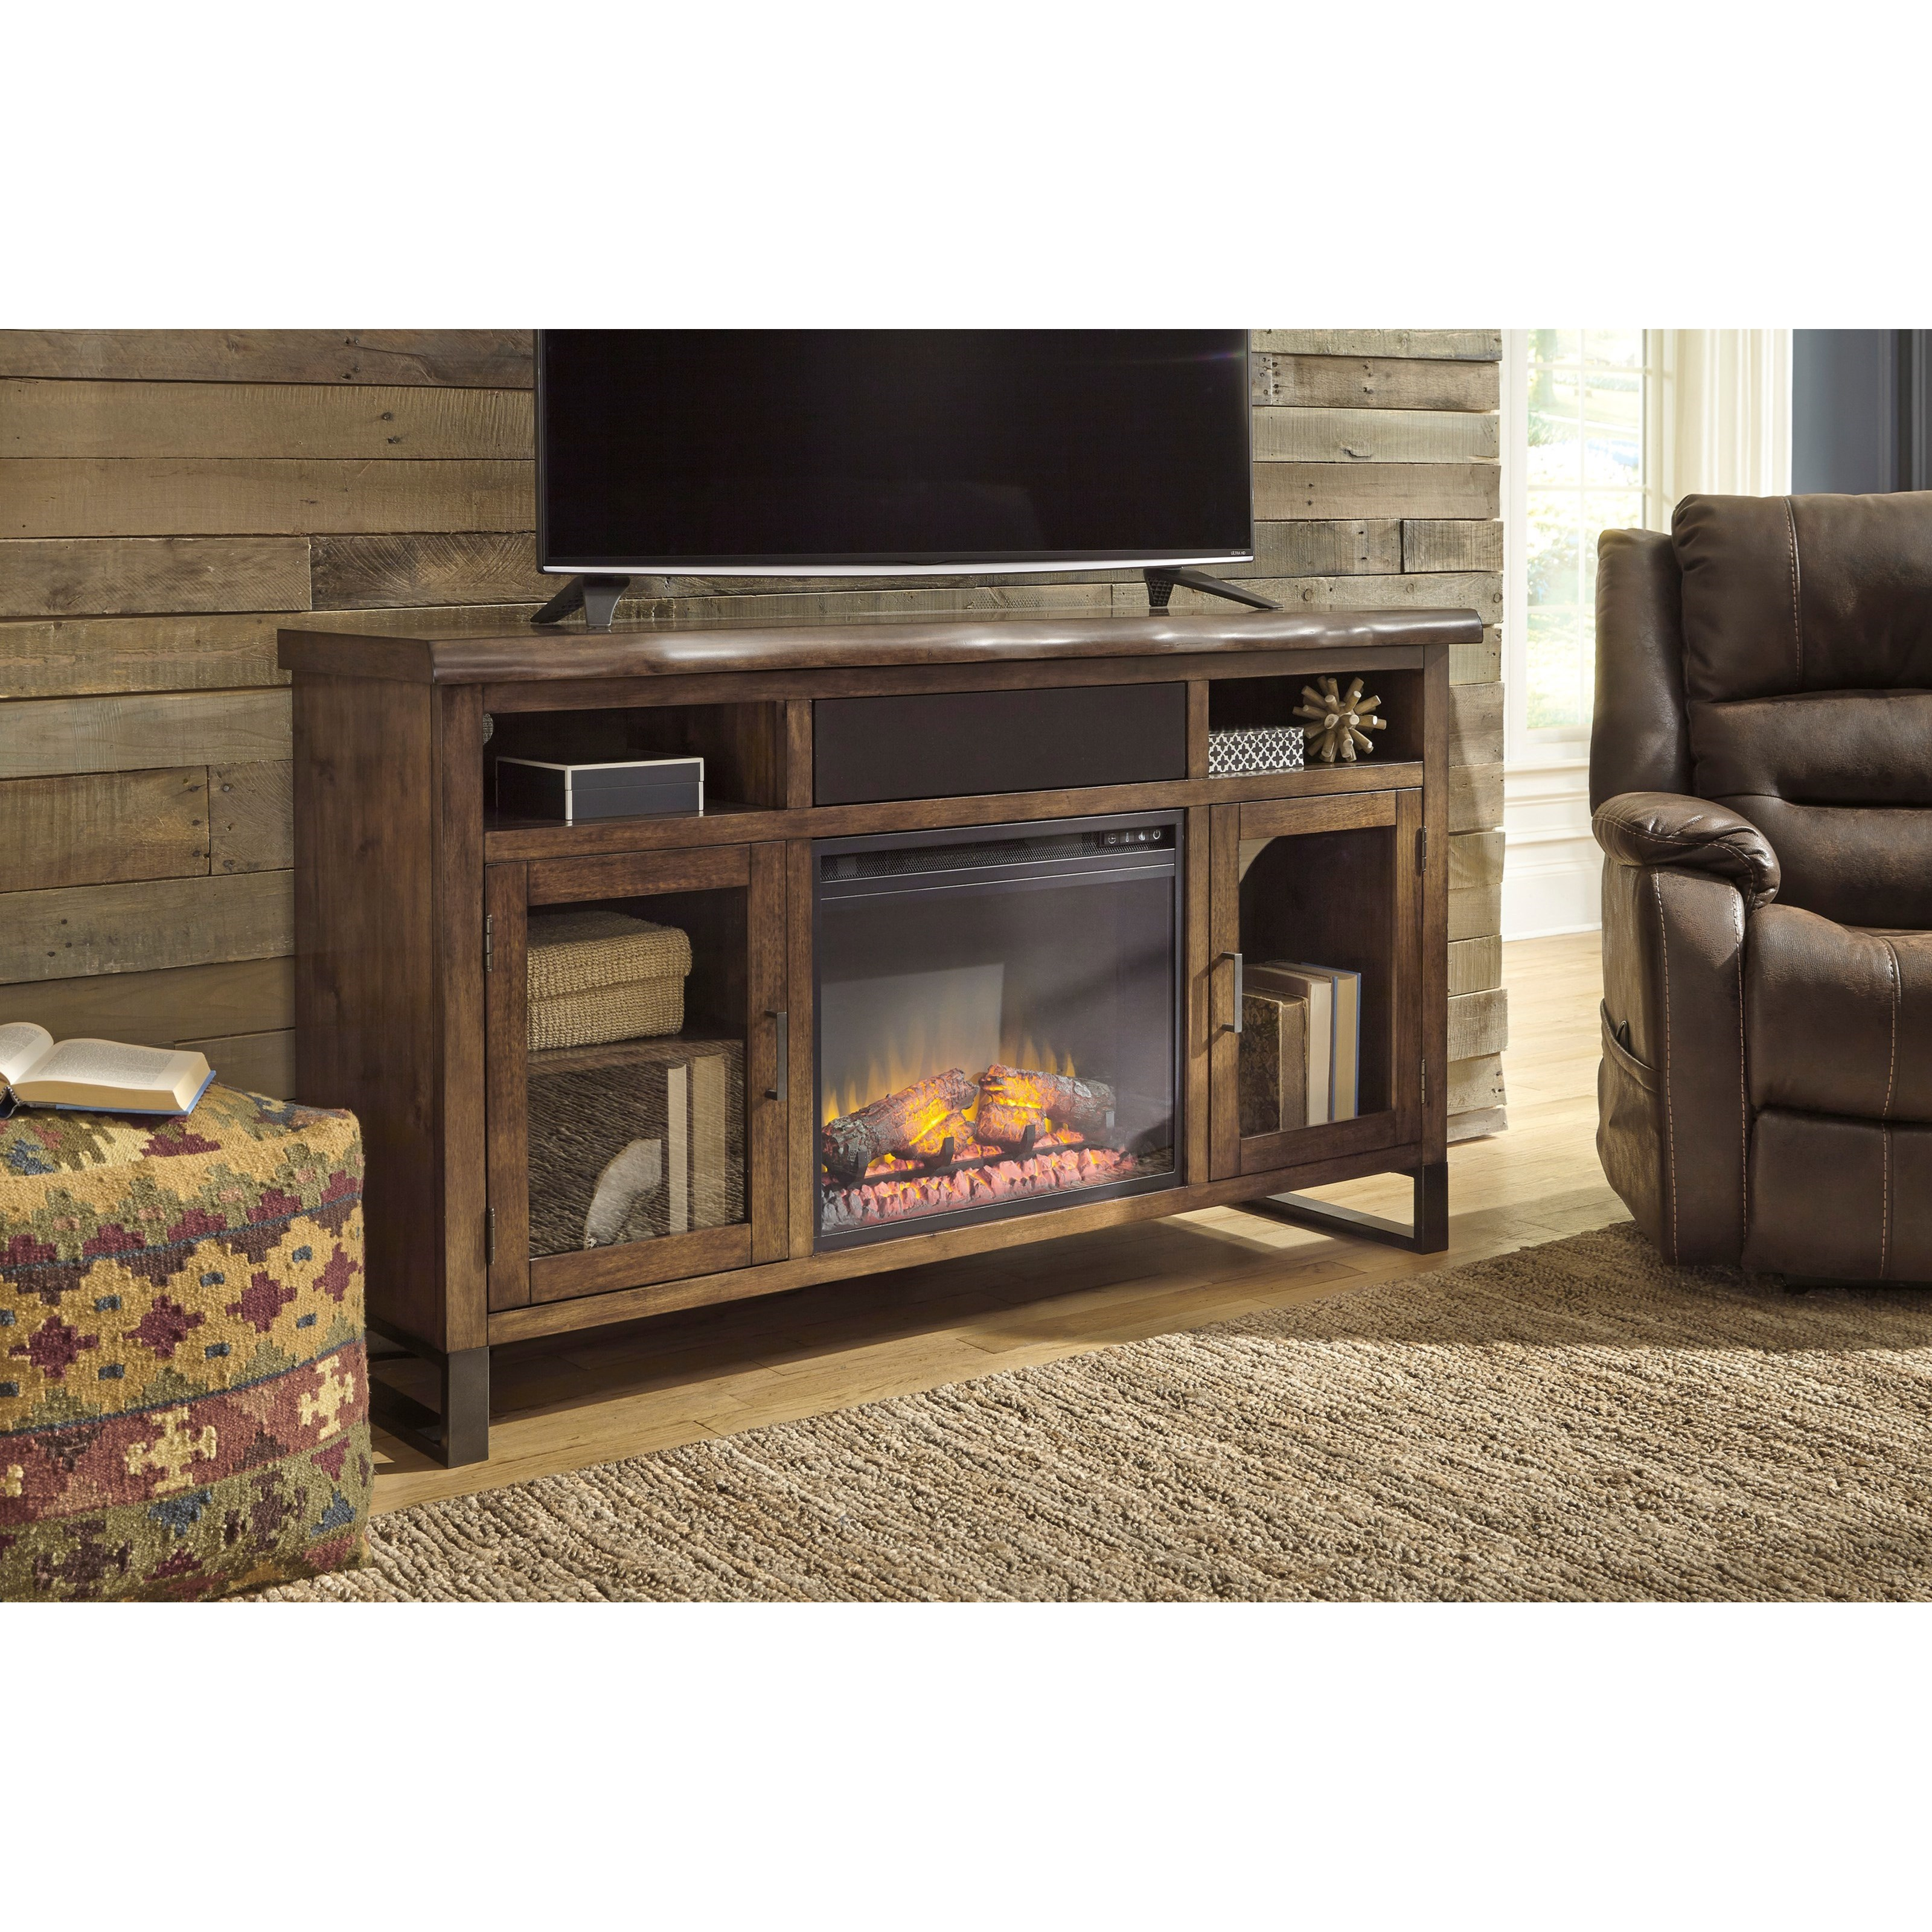 large tv stand w fireplace insert bluetooth speaker u0026 faux live